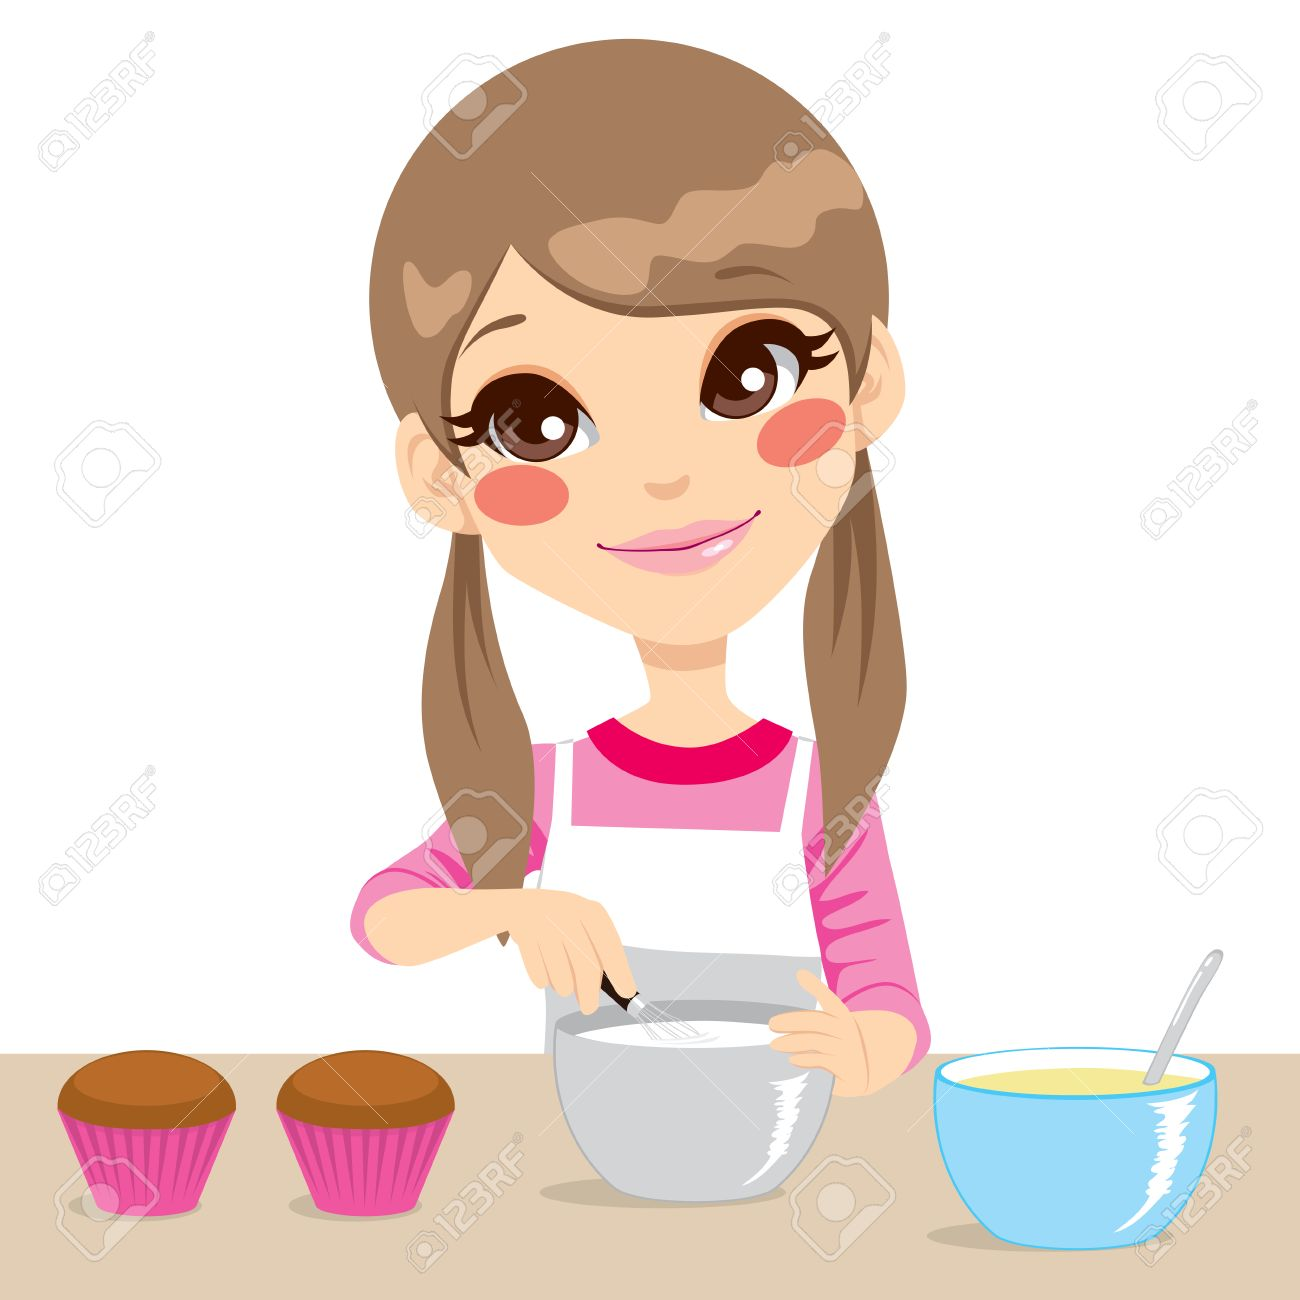 White apron food - White Apron Cute Little Girl With Apron Making Whipped Cream For Cupcakes Isolated On White